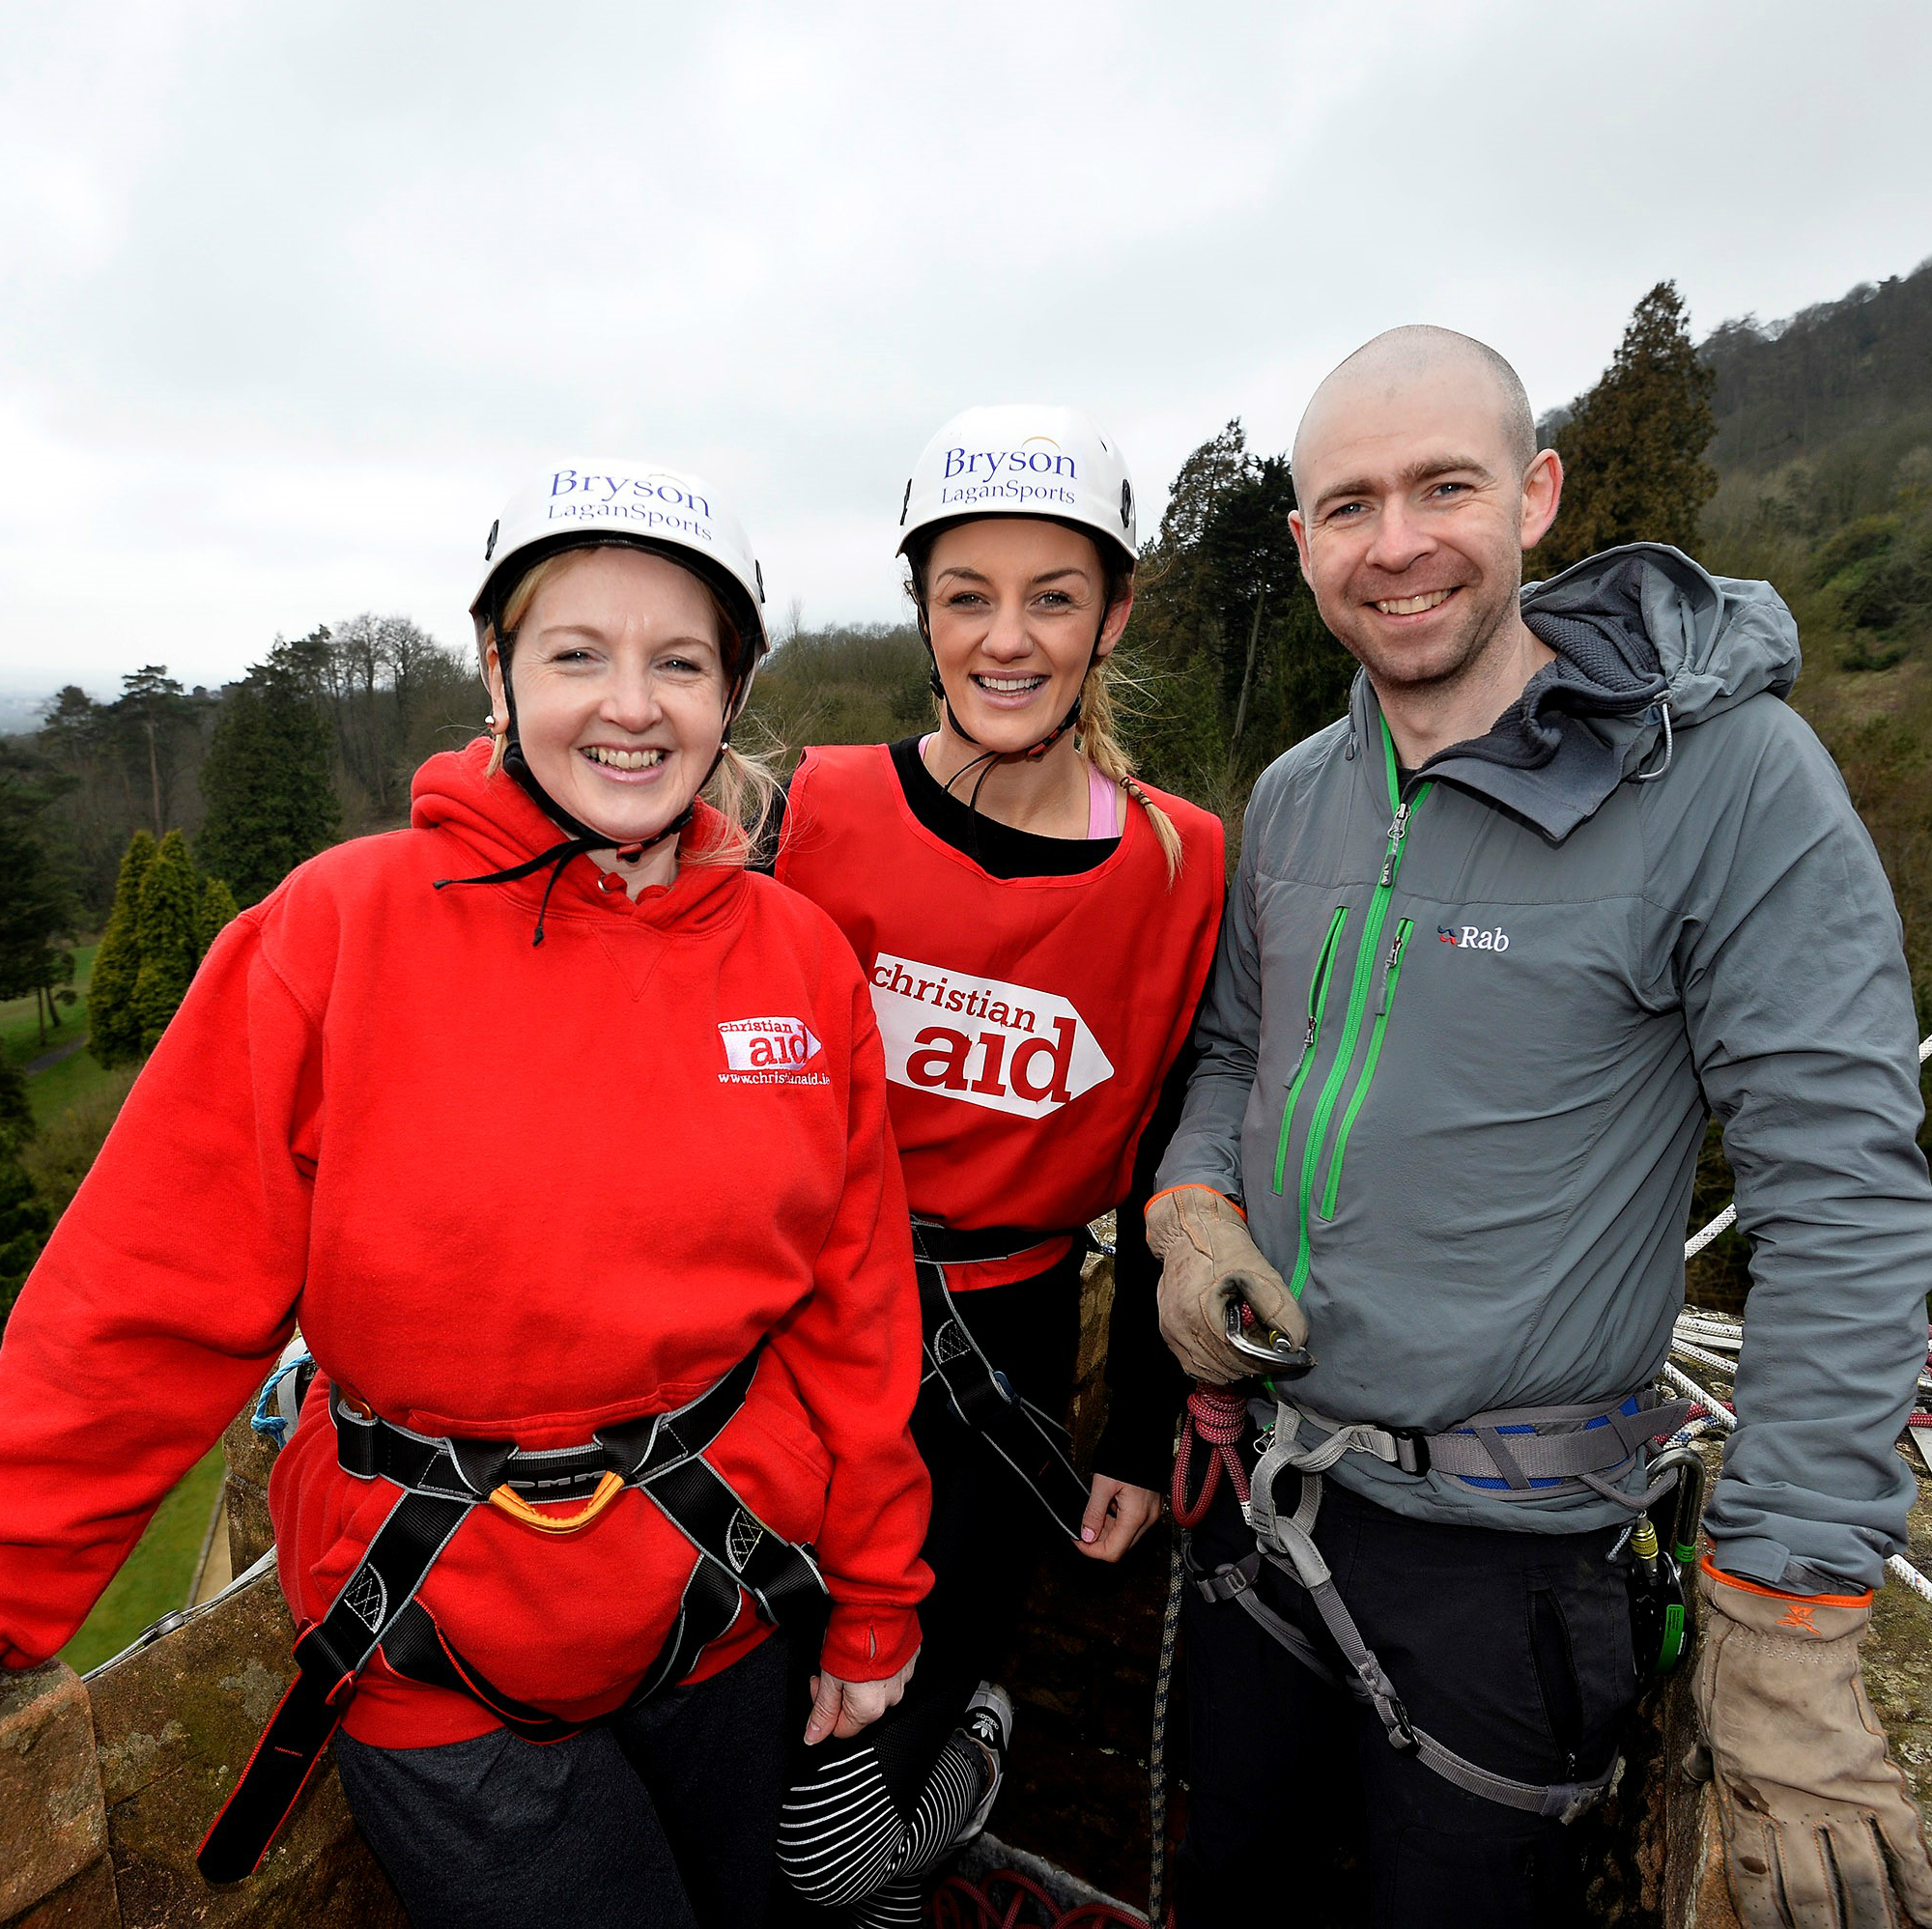 Christian Aid Chief Executive Rosamond Bennett and MMA world champion Leah McCourt get prepared for their abseil challenge